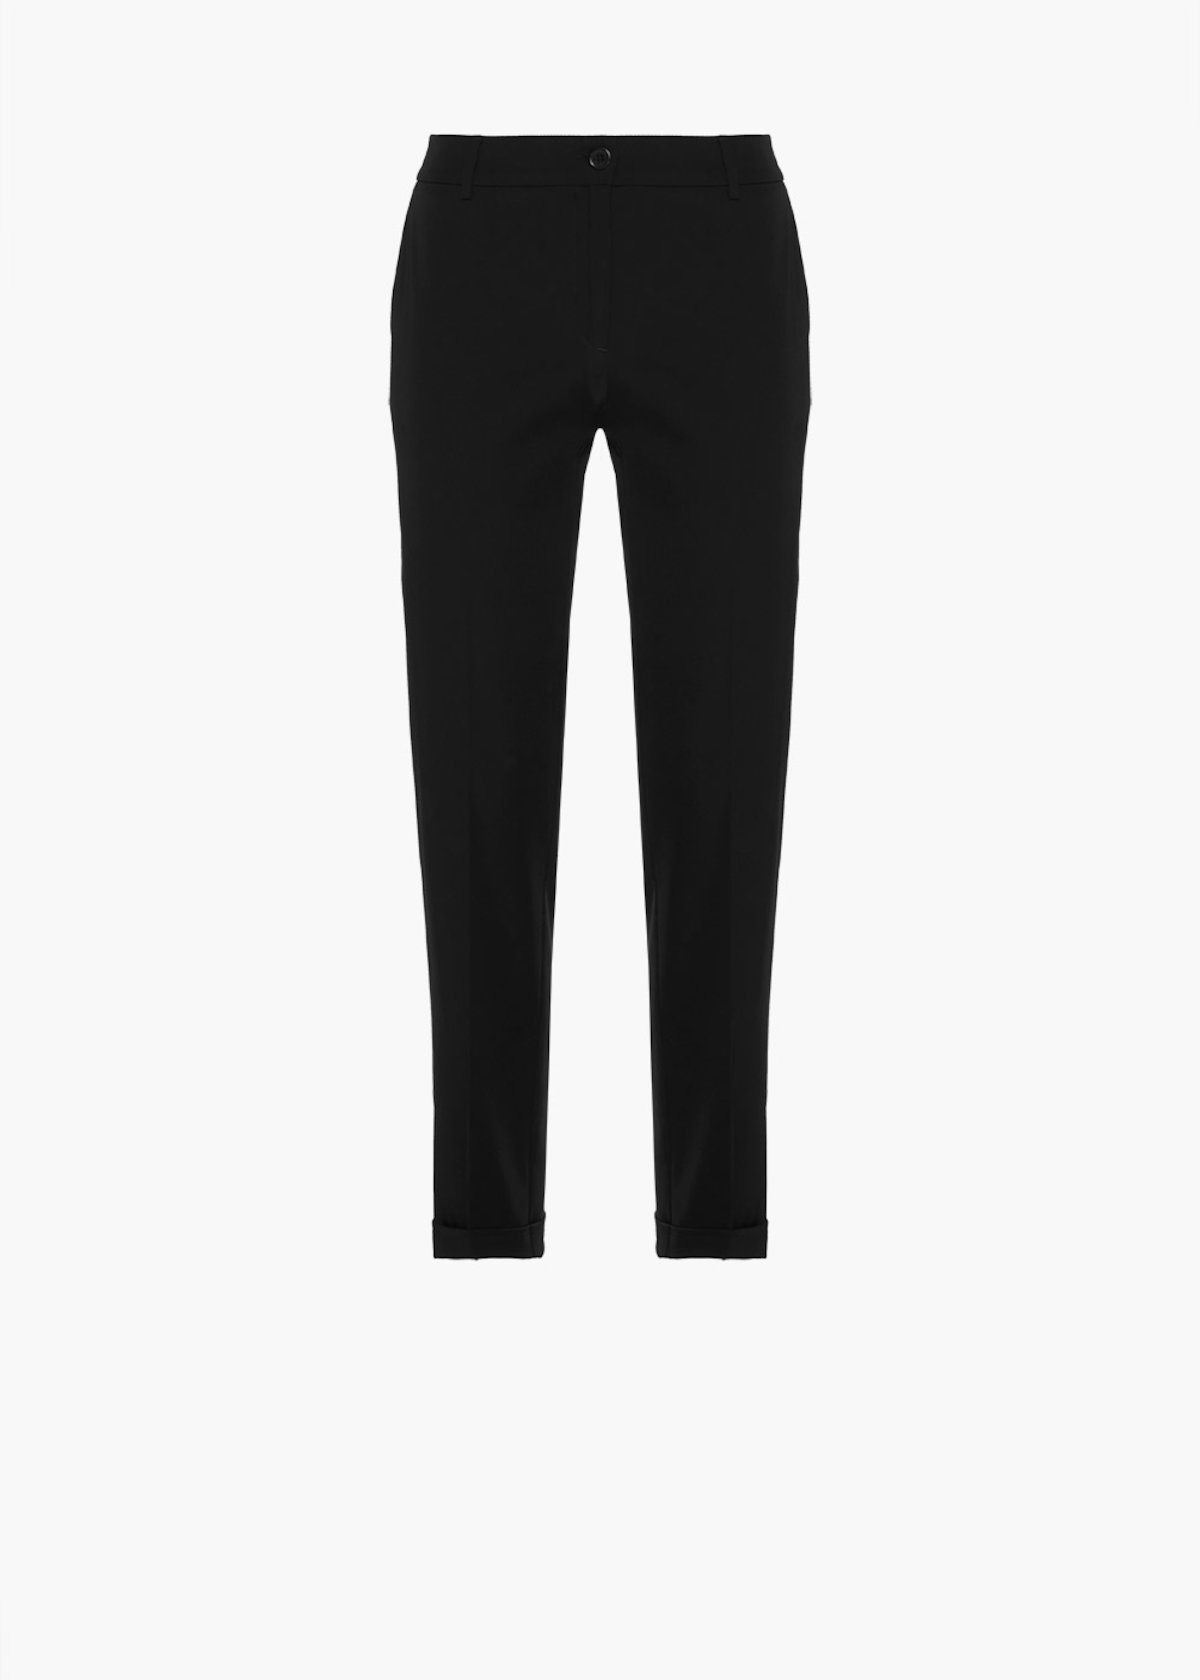 Pants Patrik Scarlett model - Black